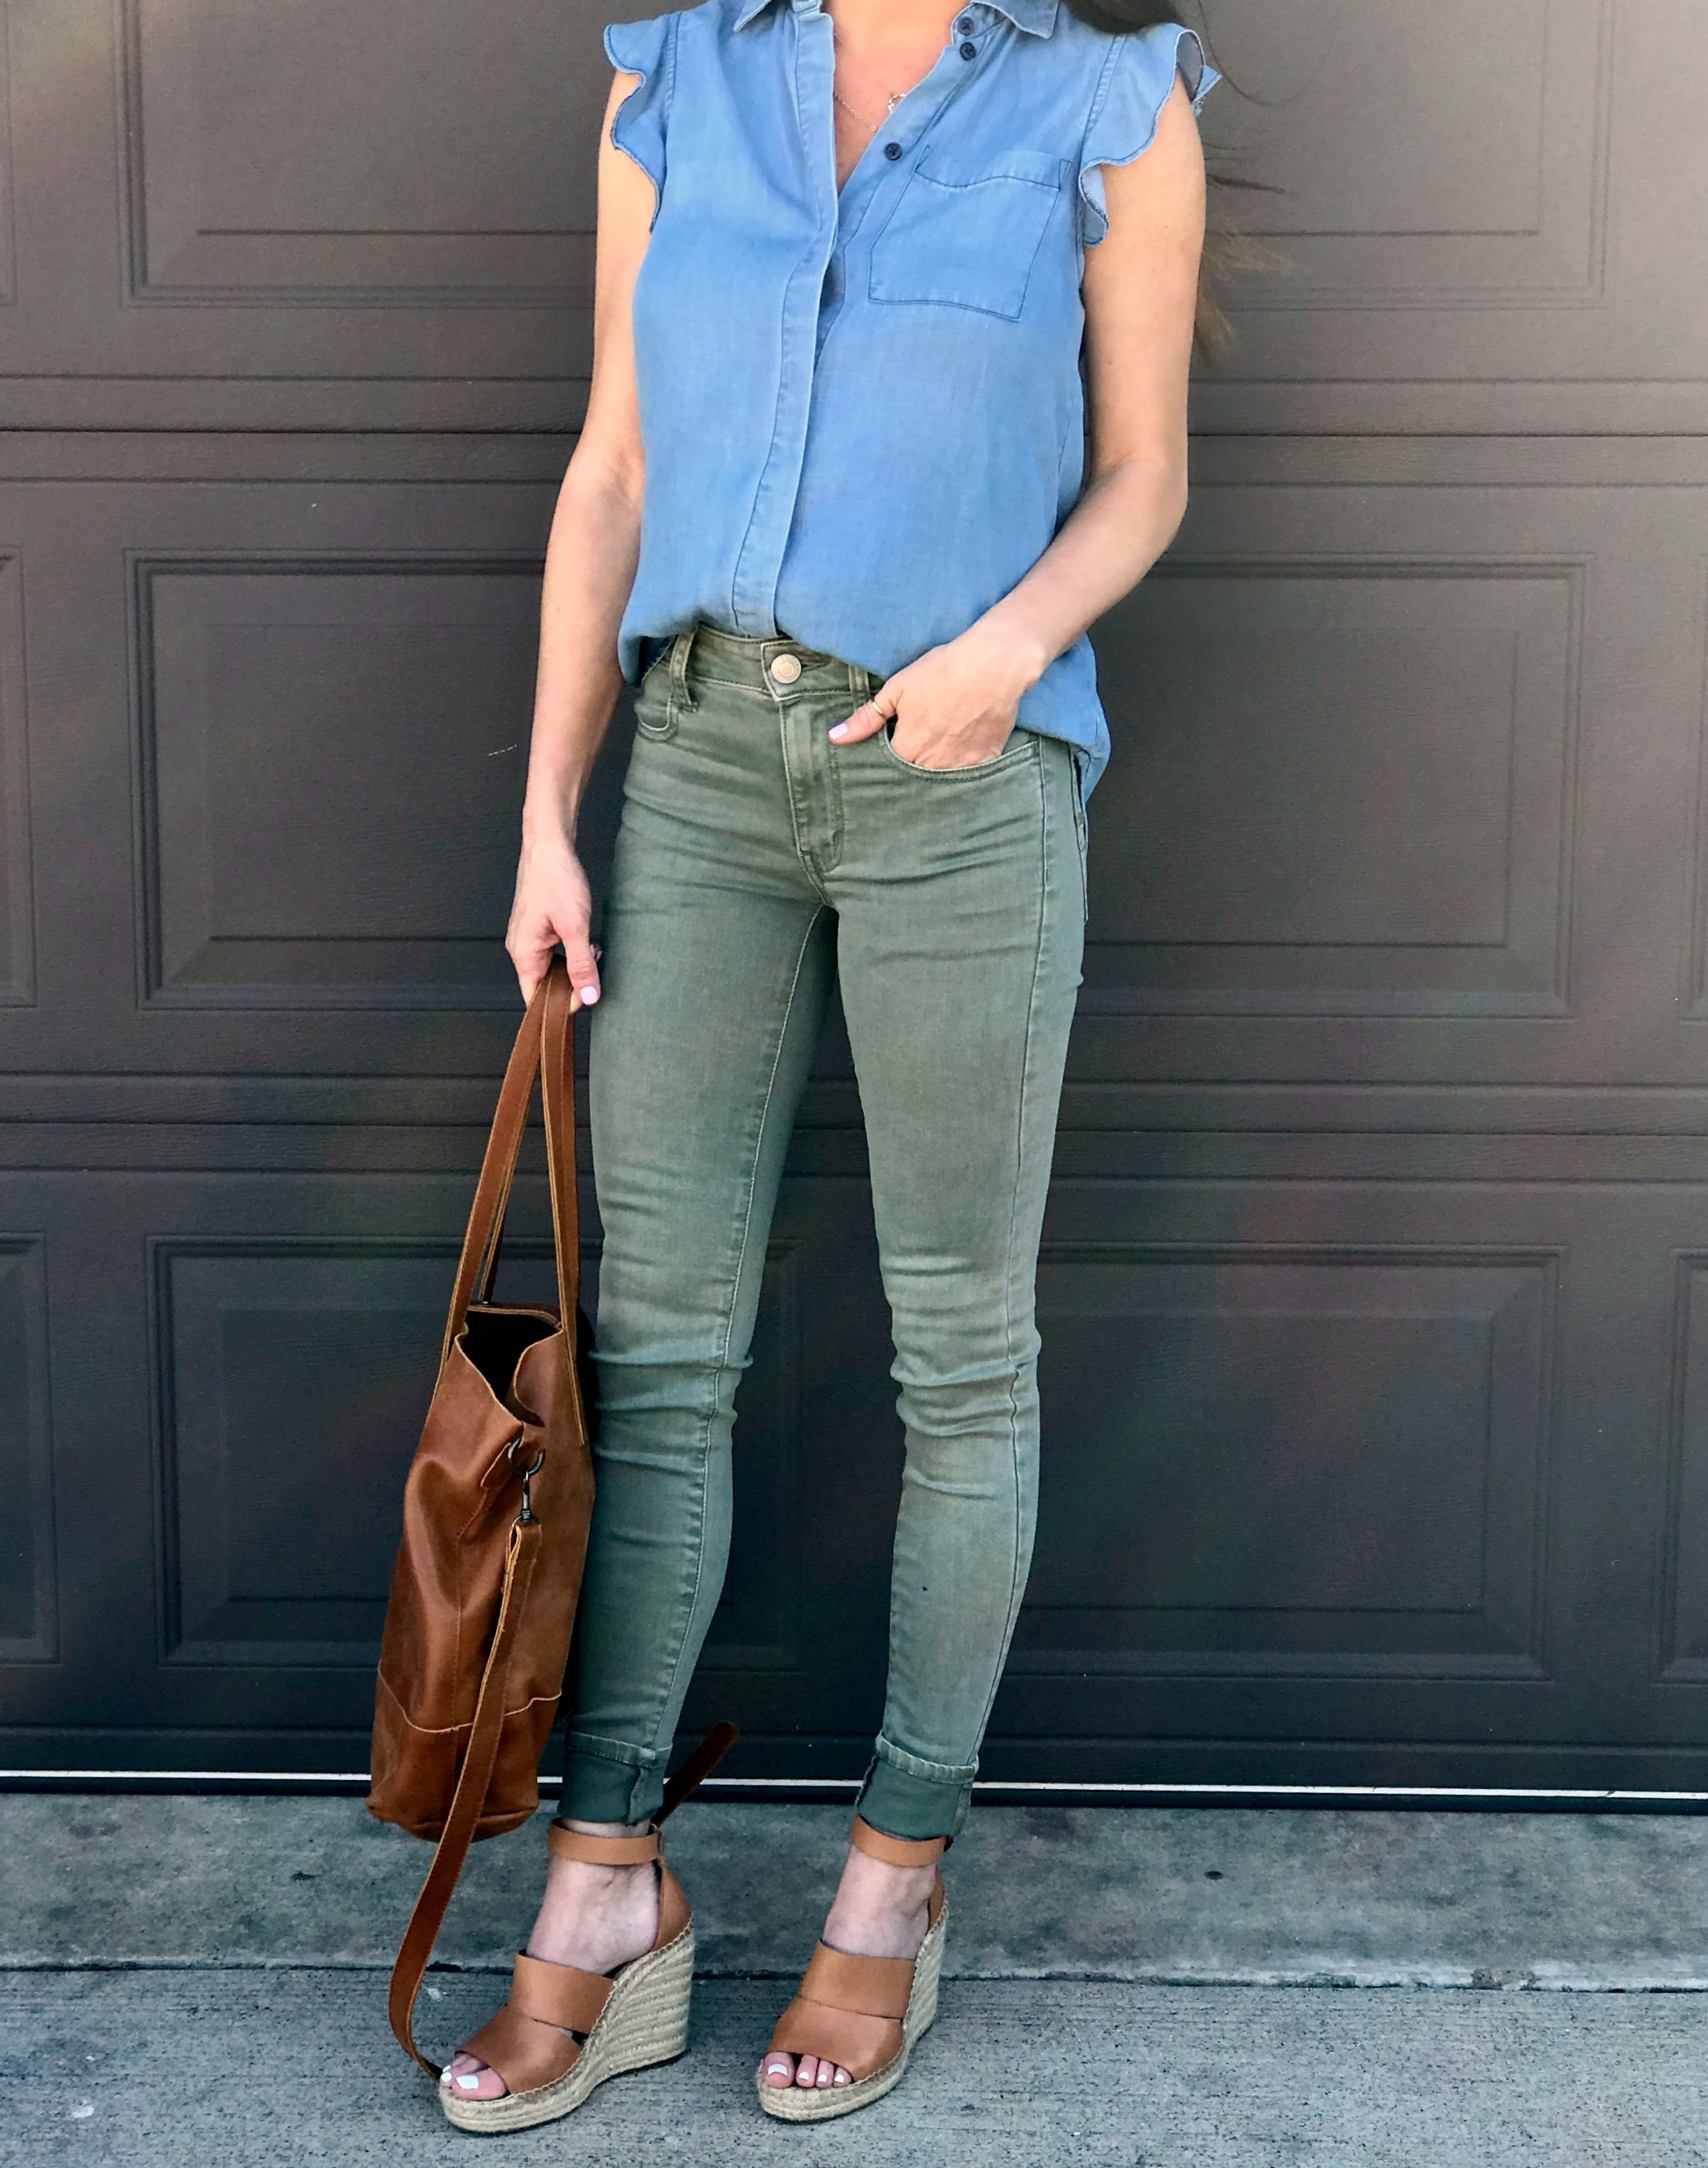 Green Pants, wedges, tote